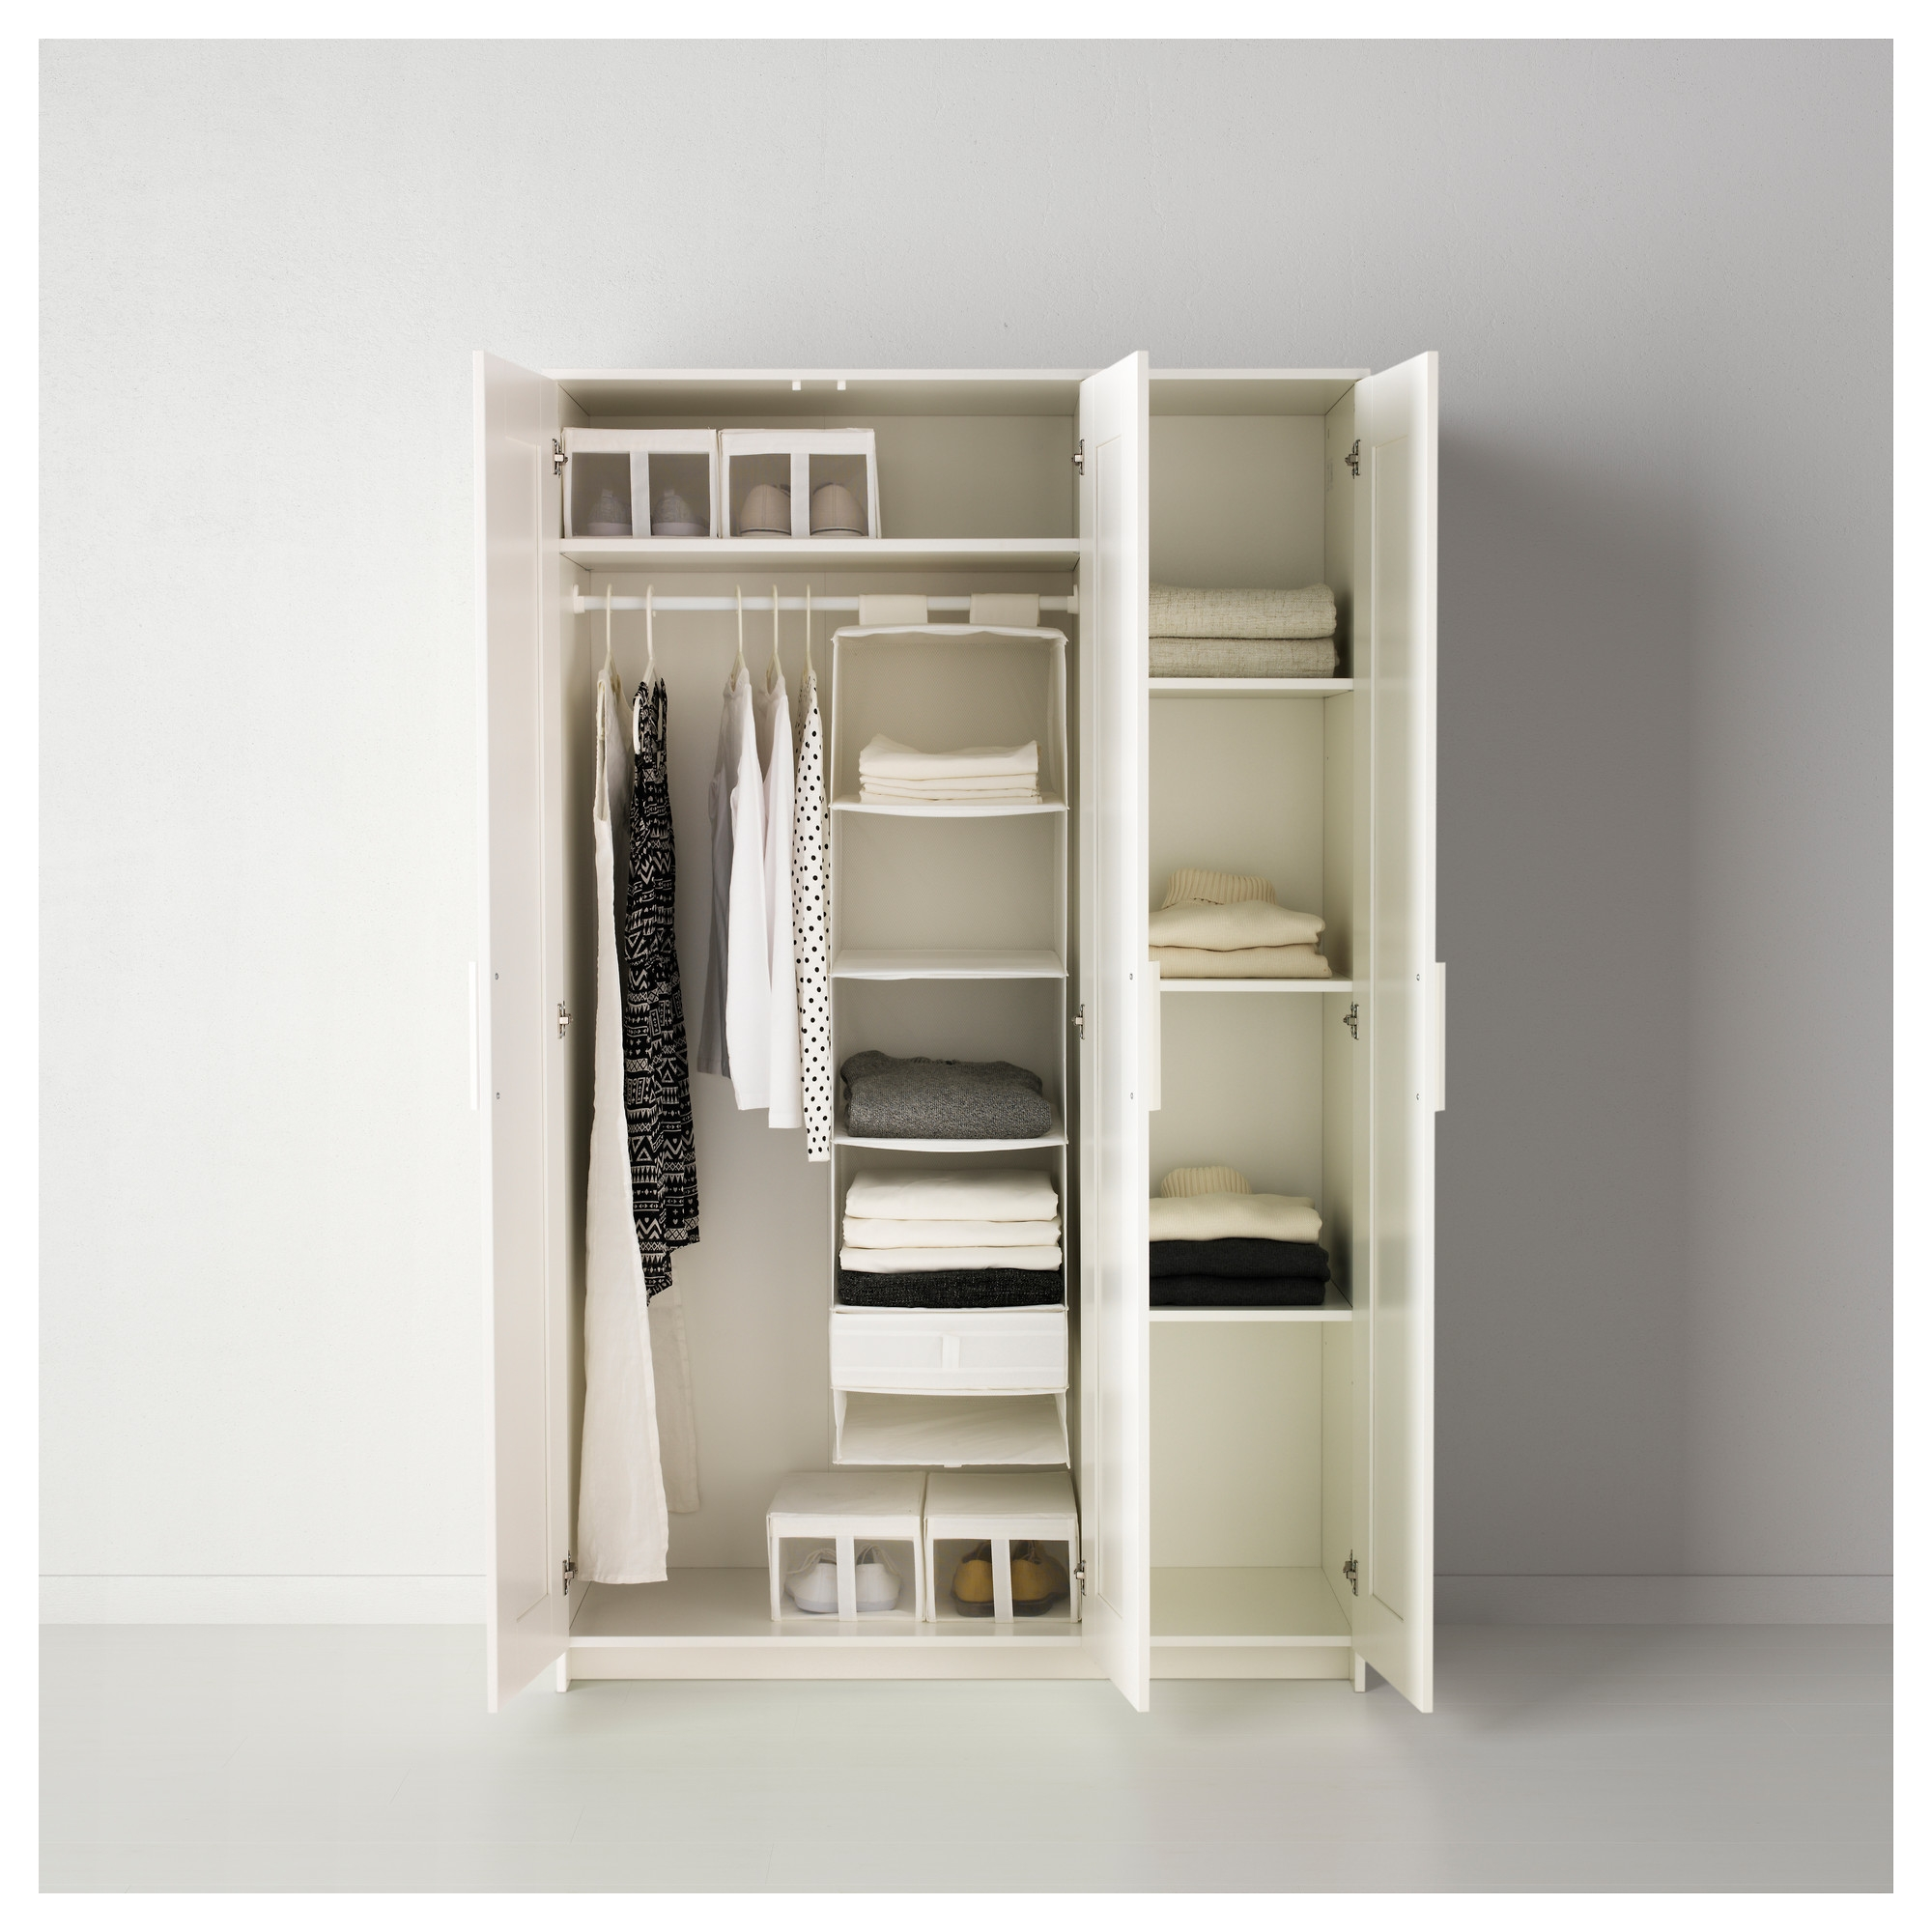 3 Door Wardrobe Storage Cabinet With 2 Drawers Creative Cabinets In Wardrobe With Shelves And Drawers (Image 1 of 15)